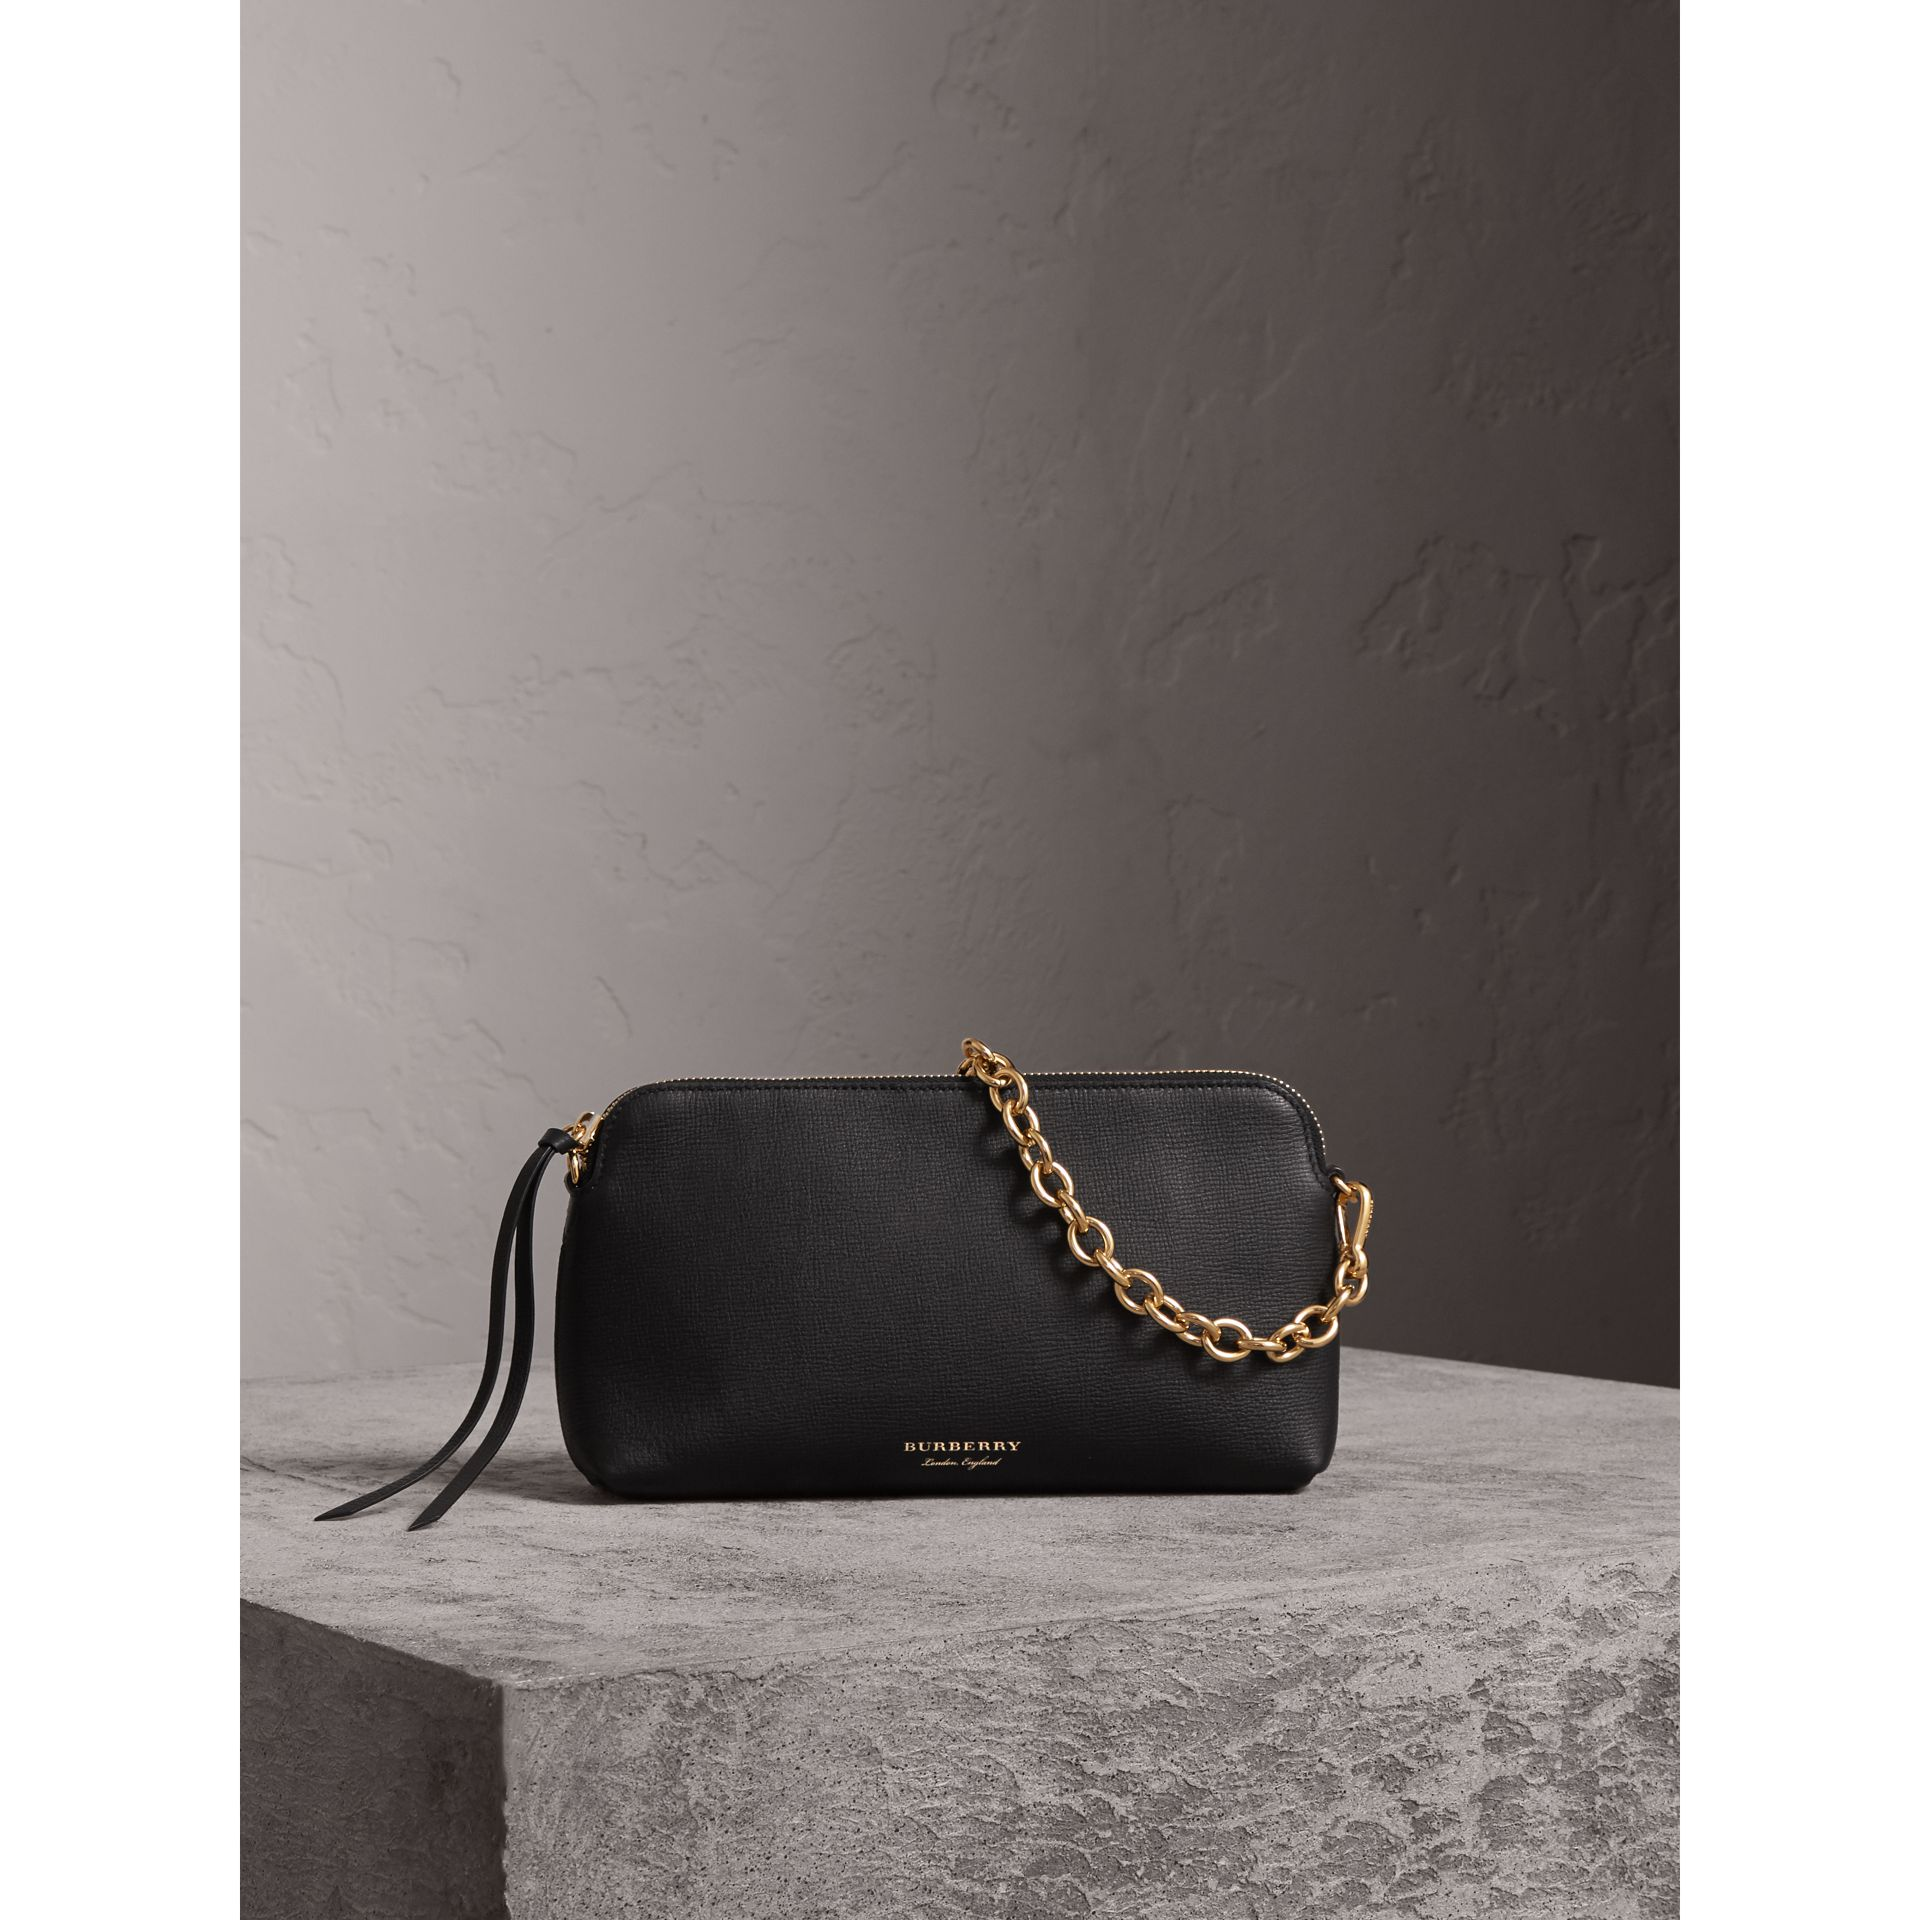 Grainy Leather Clutch Bag in Black - Women | Burberry Canada - gallery image 1